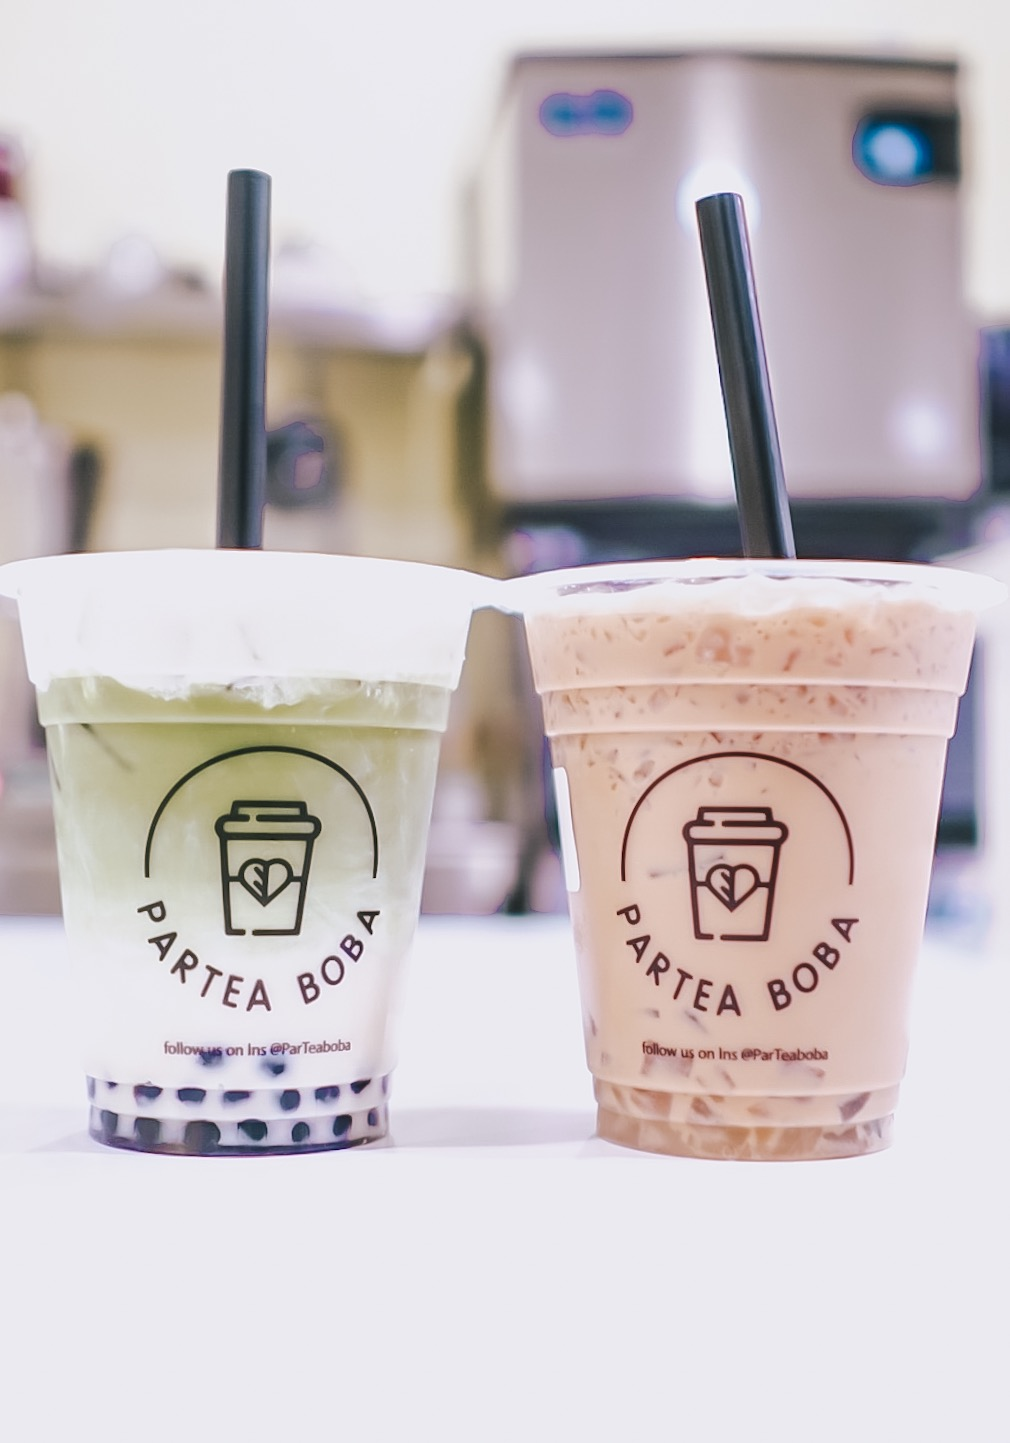 Partea Boba (van nuys) - Just like Sugar Fix Cafe, Partea Boba is on the list of one of the best boba places I know. They have a secret menu too (;